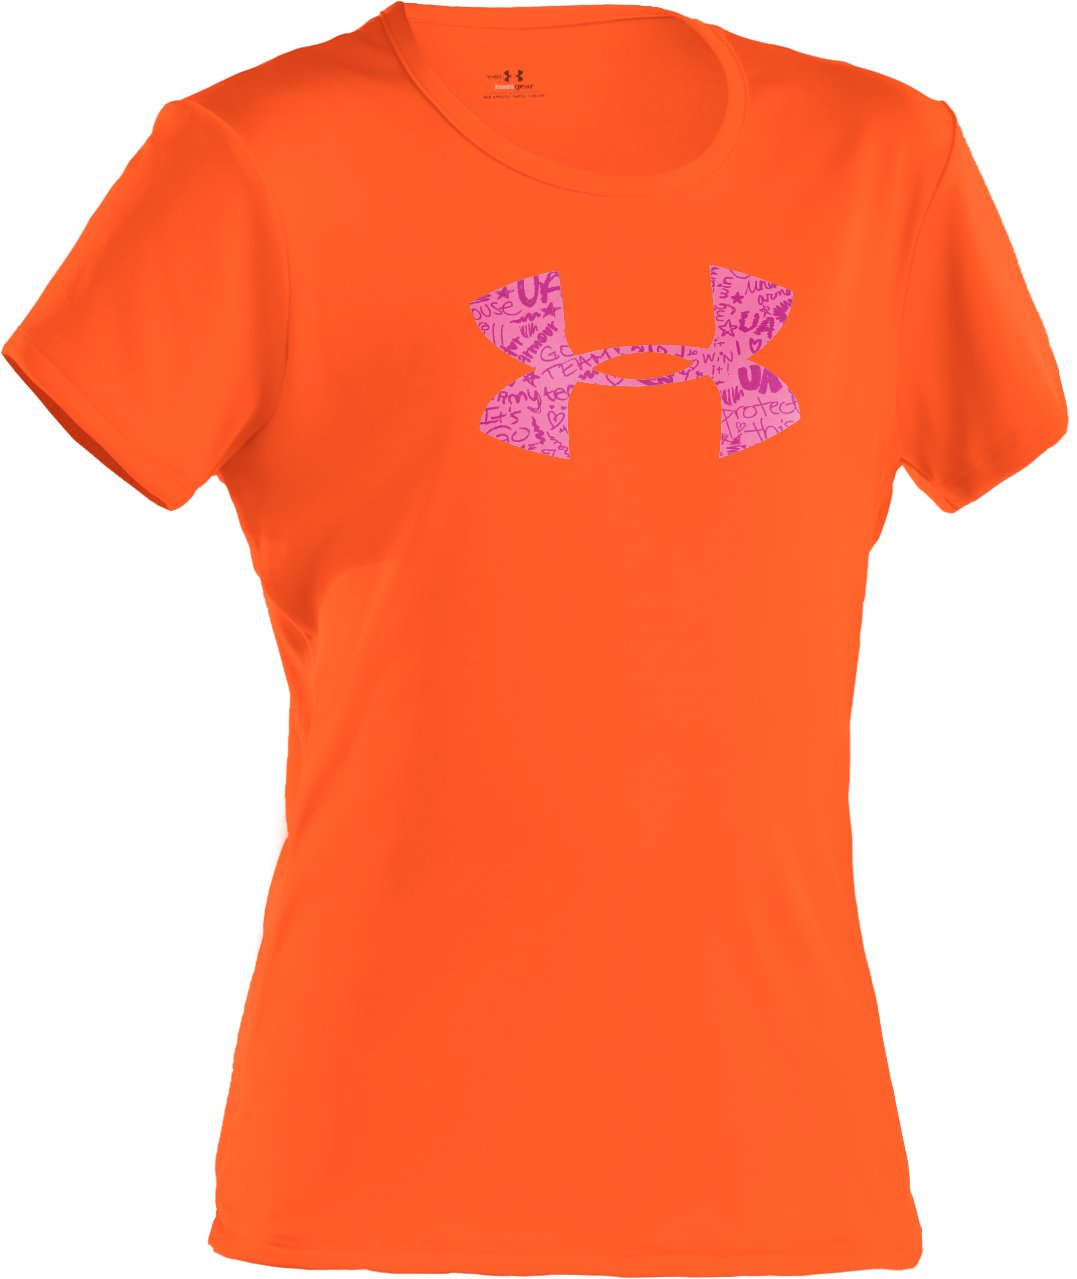 Girls' UA Big Logo Short Sleeve T-Shirt, PINKADELIC, zoomed image